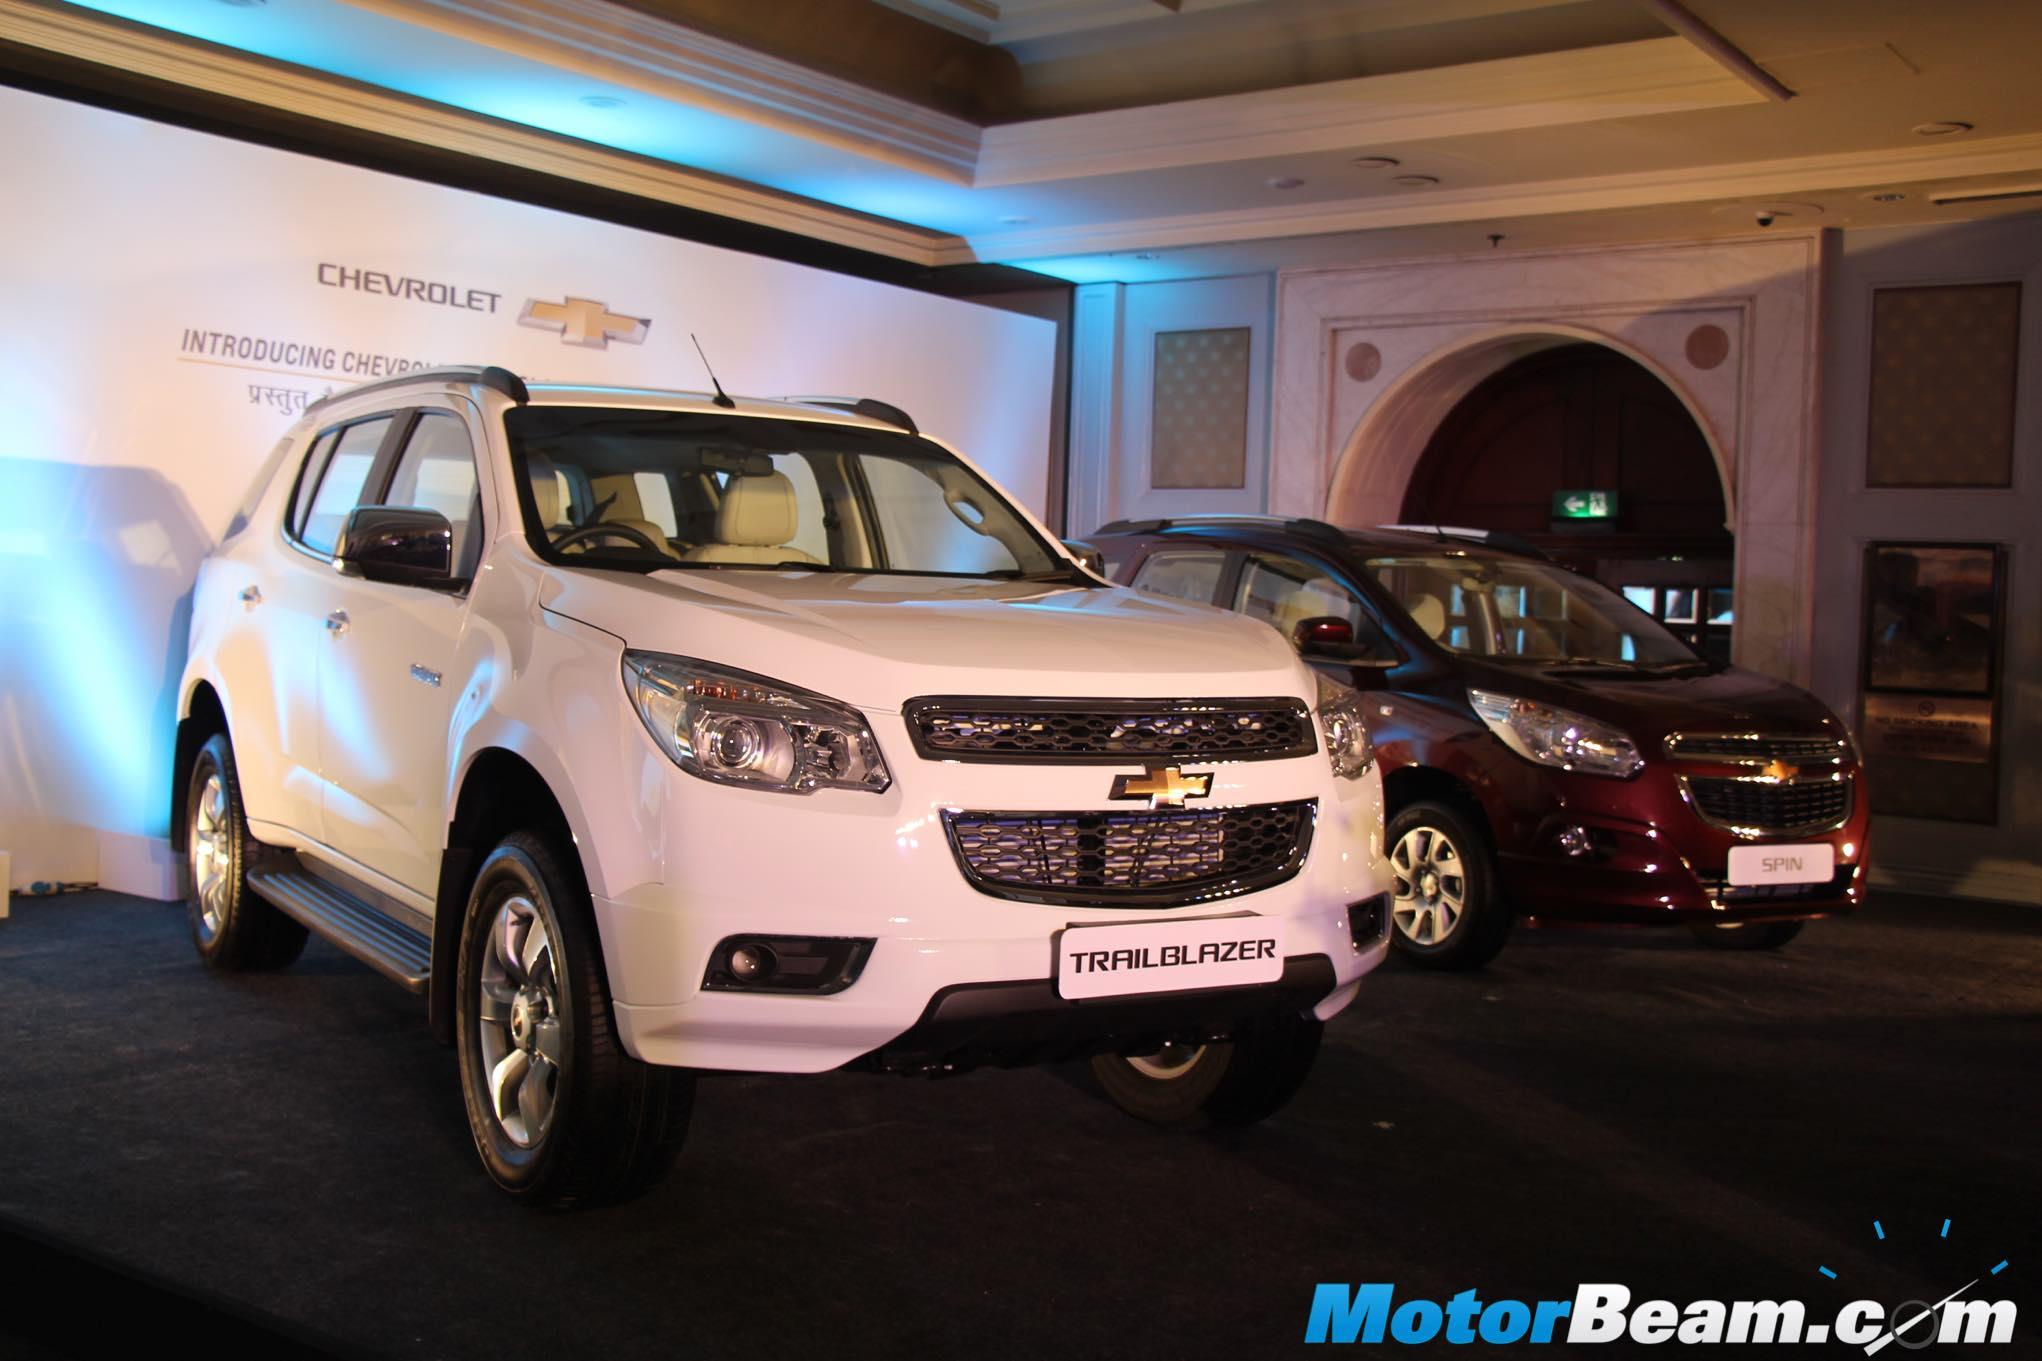 Chevrolet Trailblazer Spin